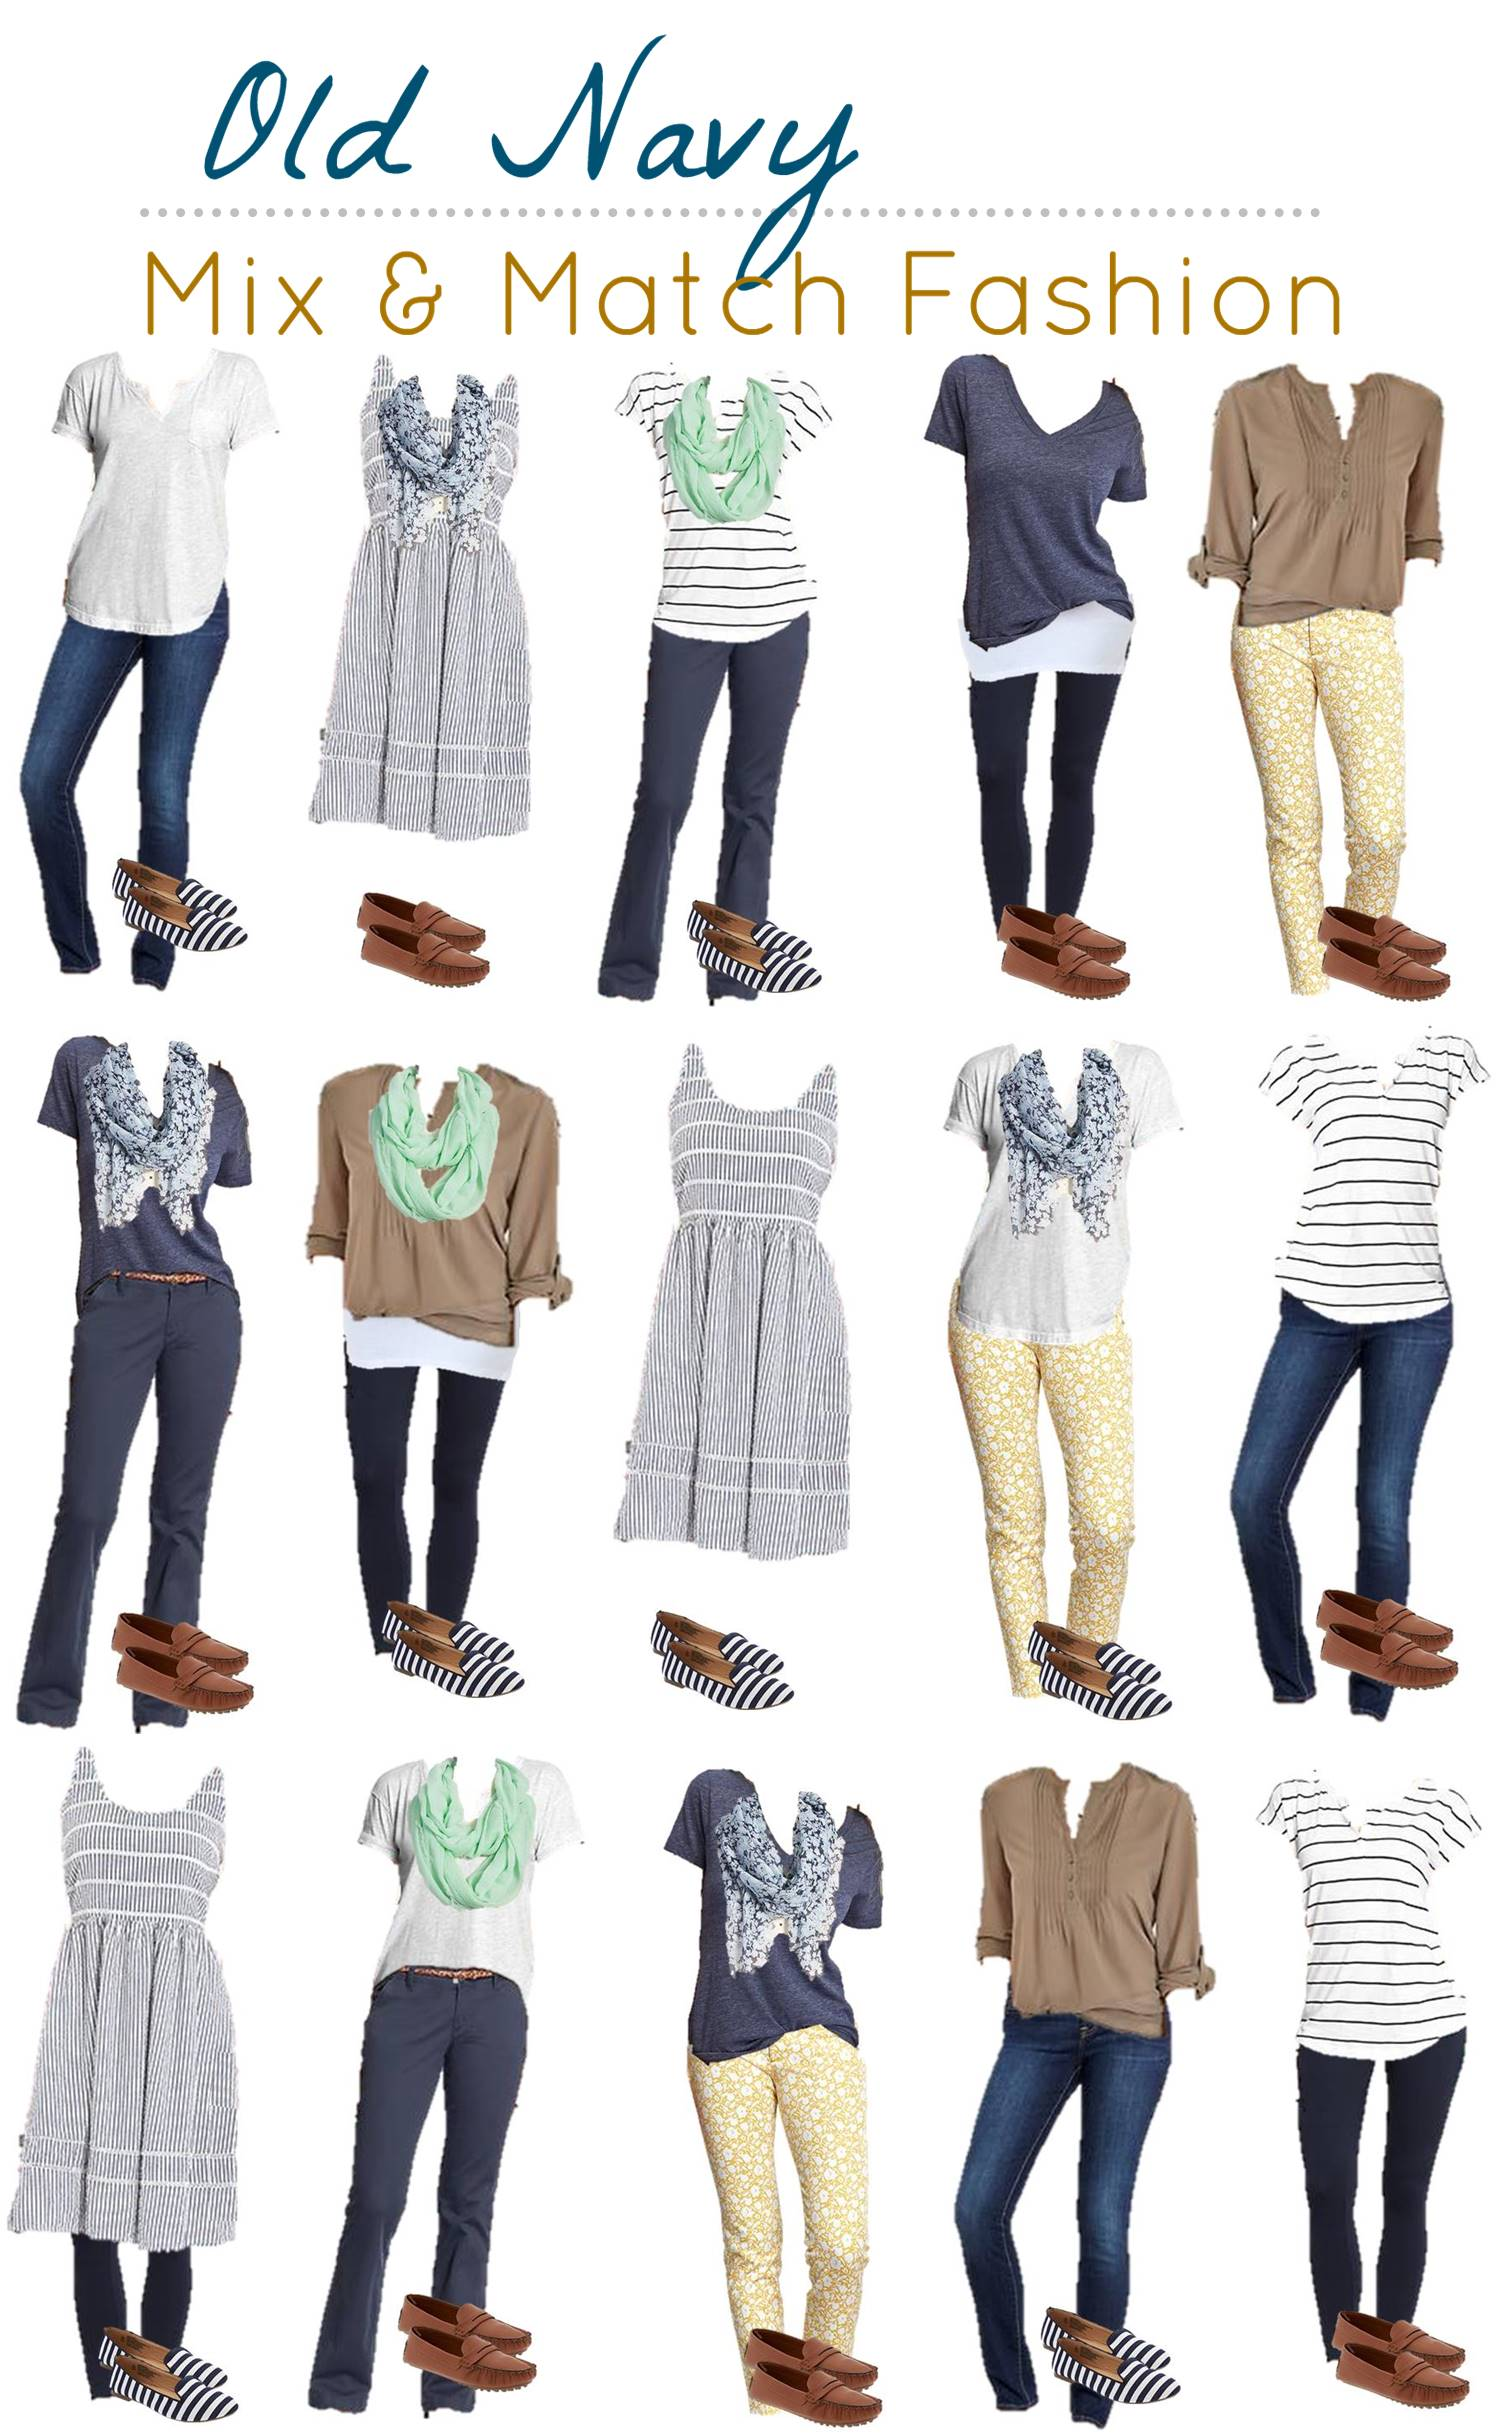 family photo color ideas for summer - Mix & Match Your Look with Old Navy